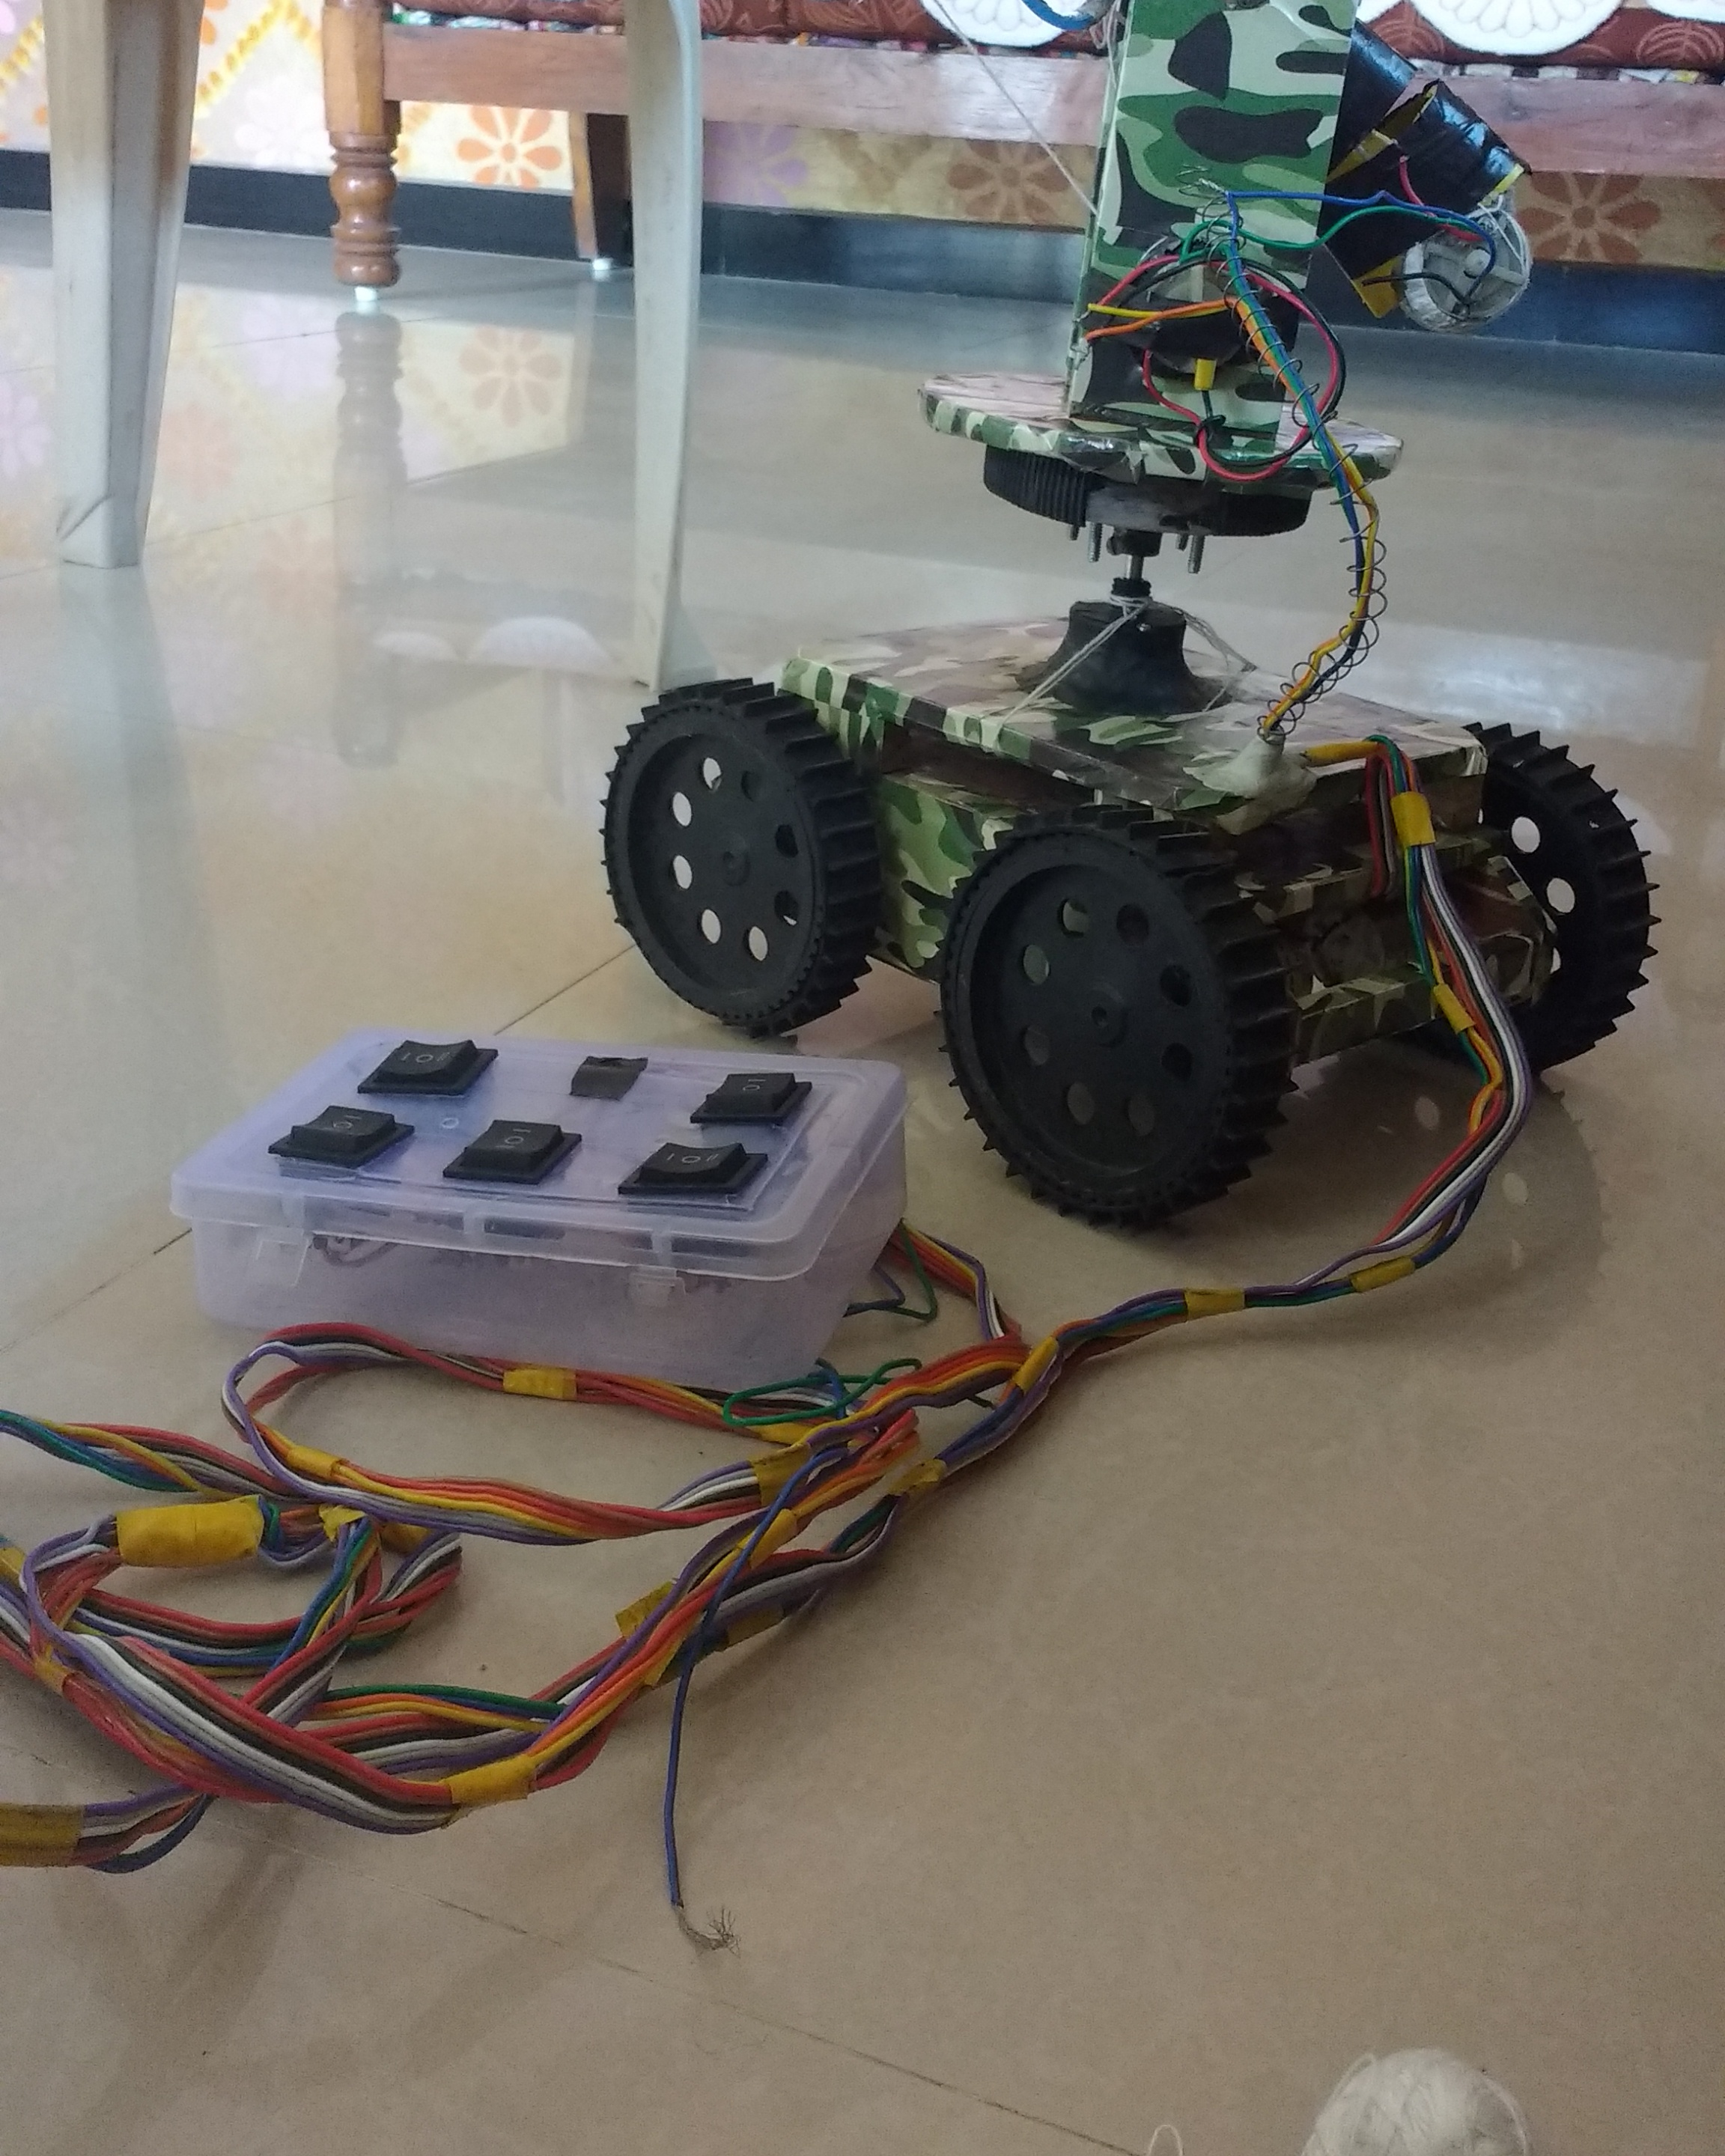 Remote Control Army Robot The Ieee Maker Project Electronics How To Make A Car Concept Of My Is Nothing But Wireless With Gun Toy Wirless Camra Pir Senr That Allow Set Target